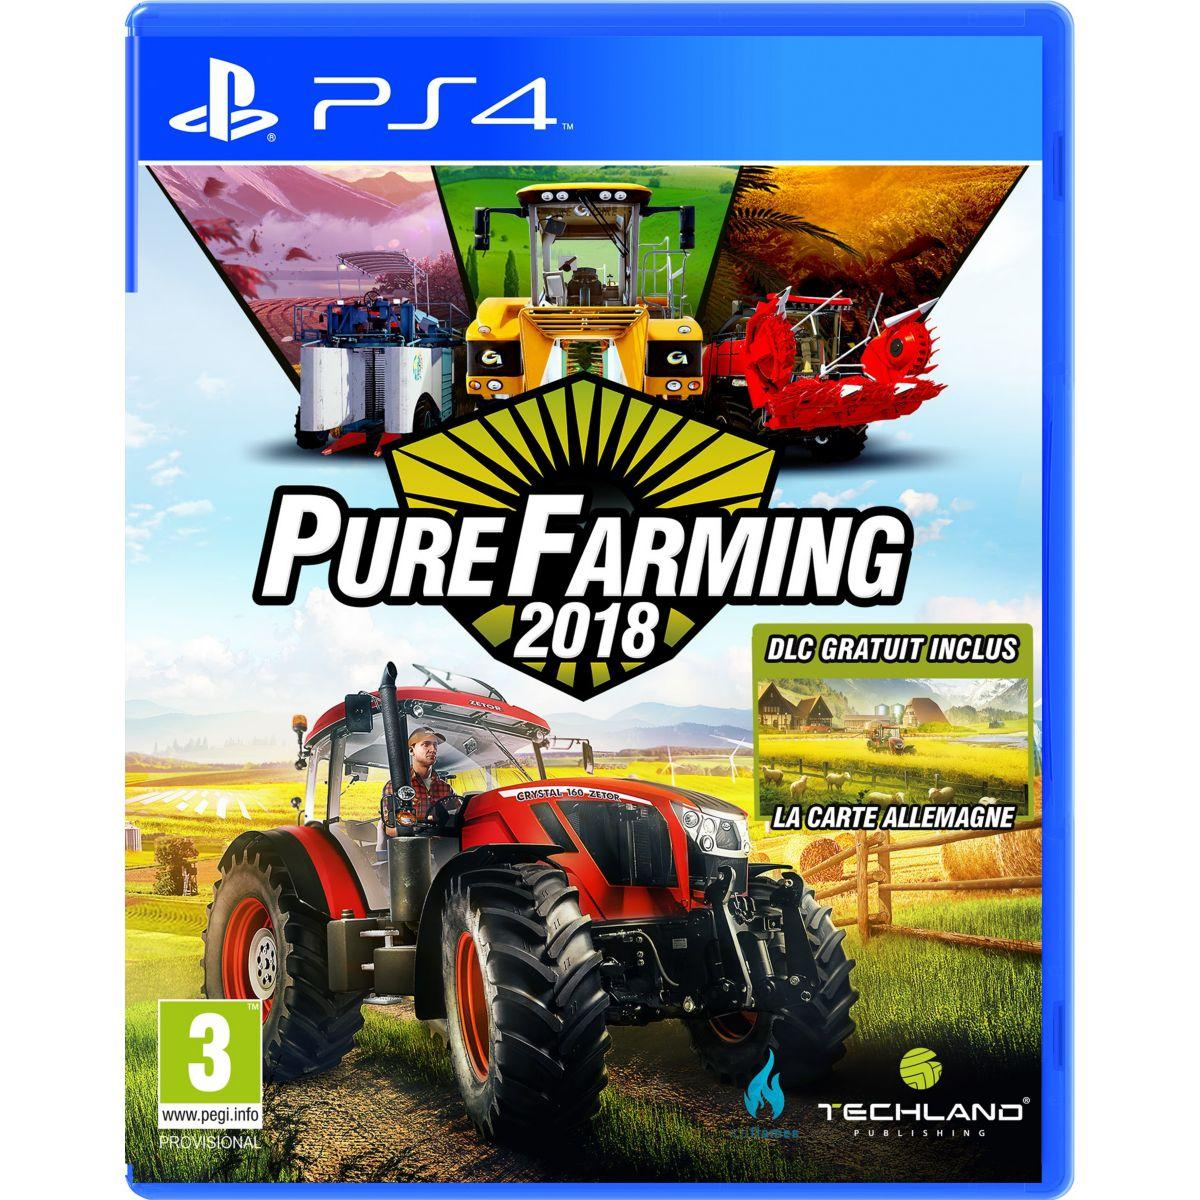 Jeu ps4 koch media pure farming 2018 - day 1 edition (photo)